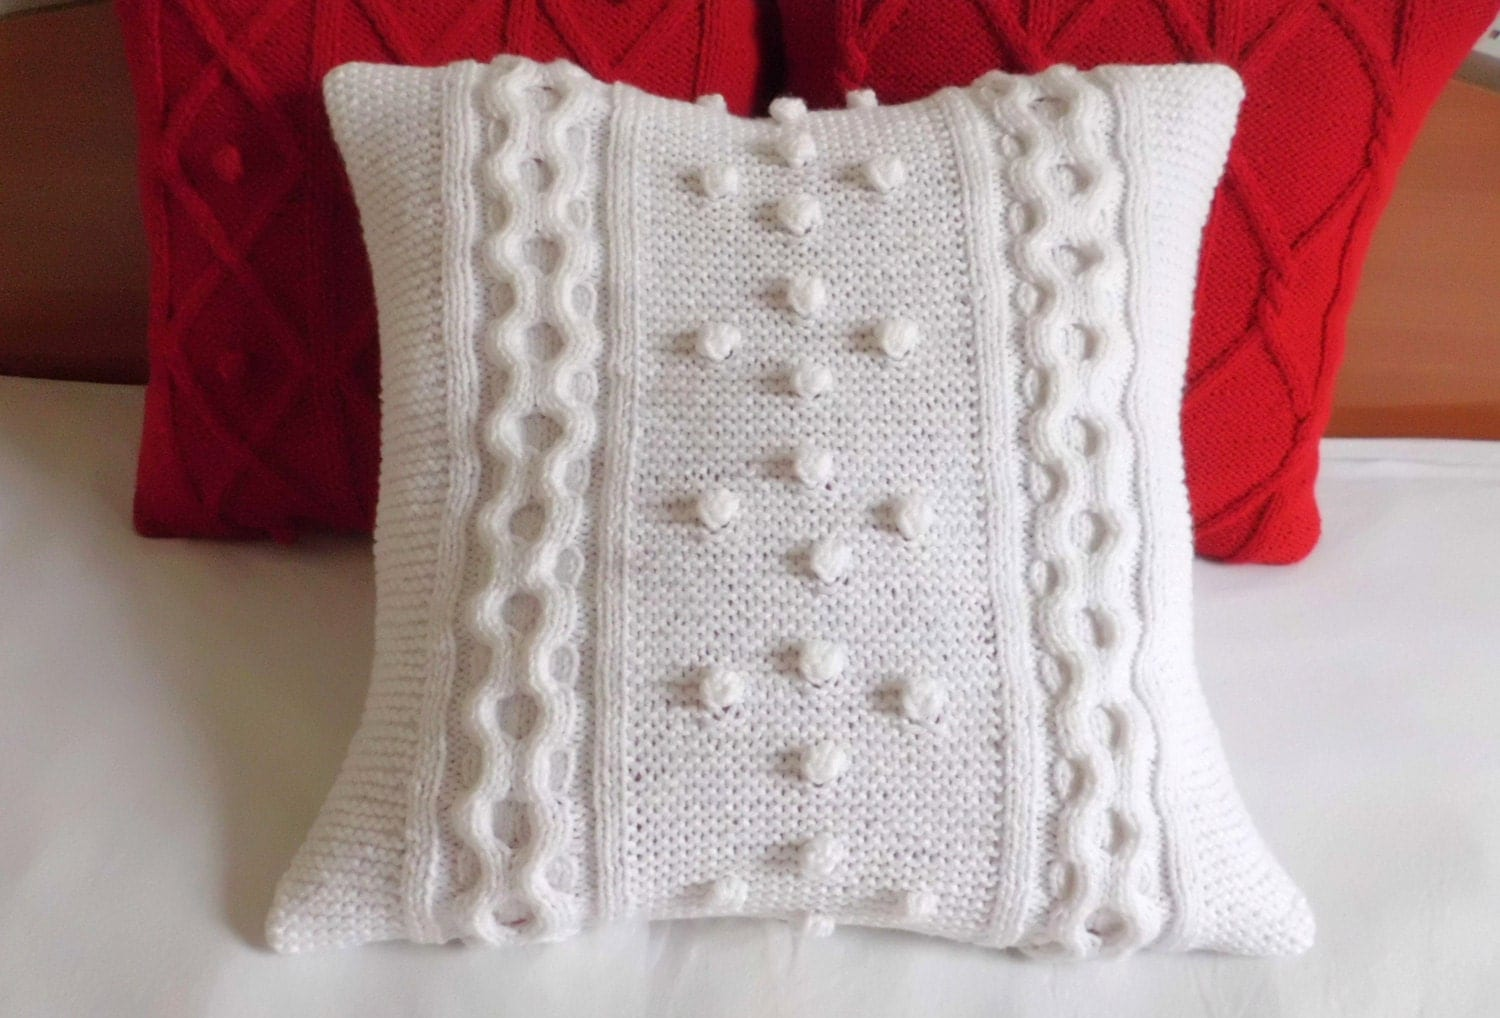 Cable knit cushion cover white, knitted pillow cover, decorative couch pillow, knit throw pillow, home décor, 16x16 Christmas pillow sham - Adorablewares